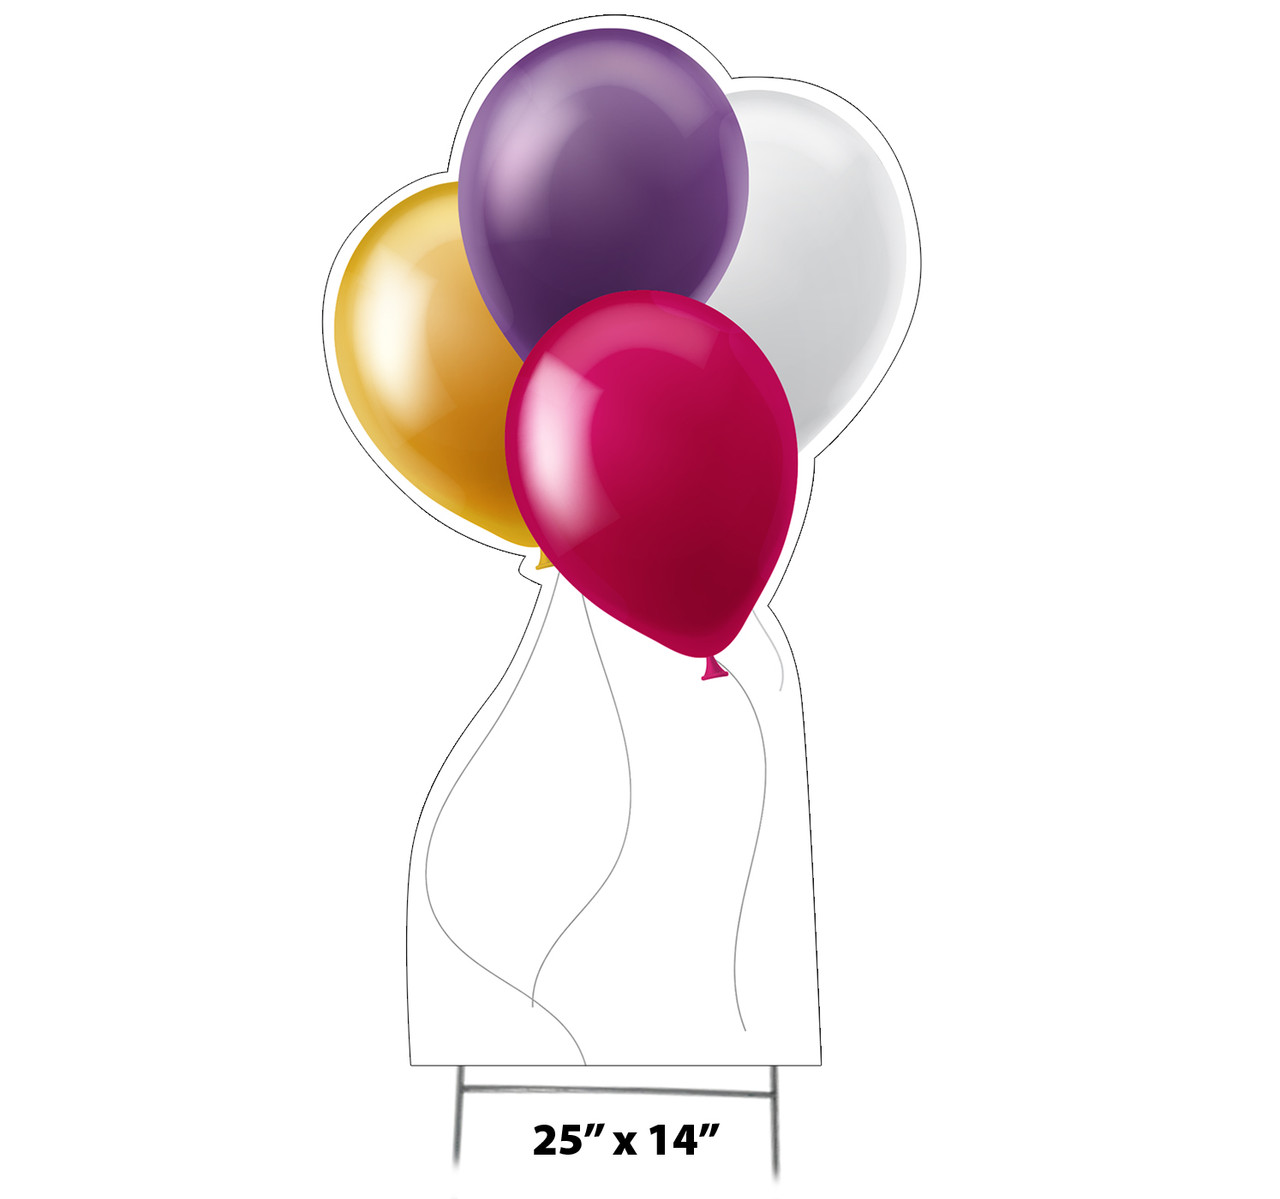 Coroplast outdoor yard sign icon of balloons with dimensions.